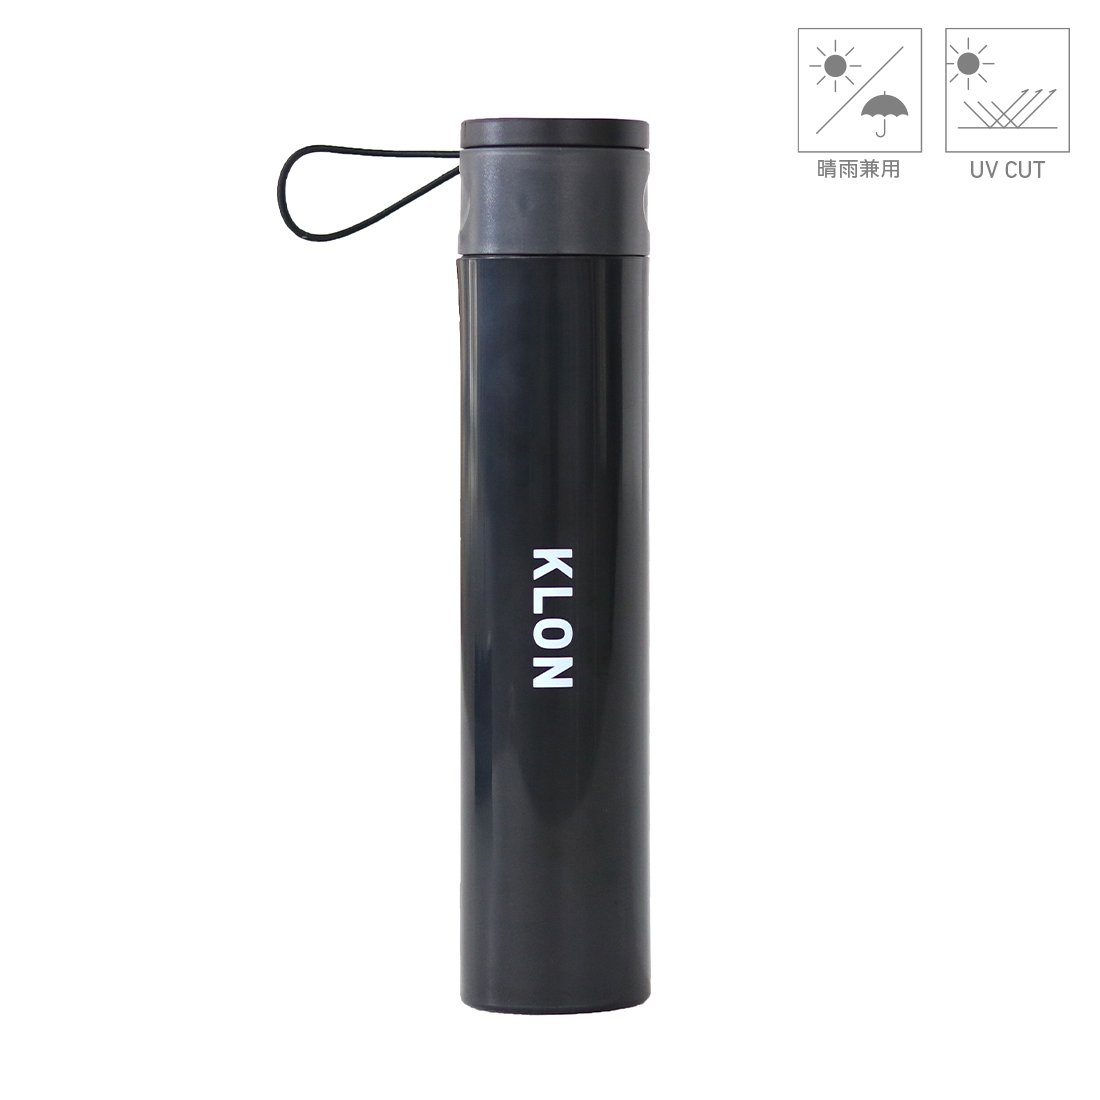 KLON FOLDING UV UMBRELLA